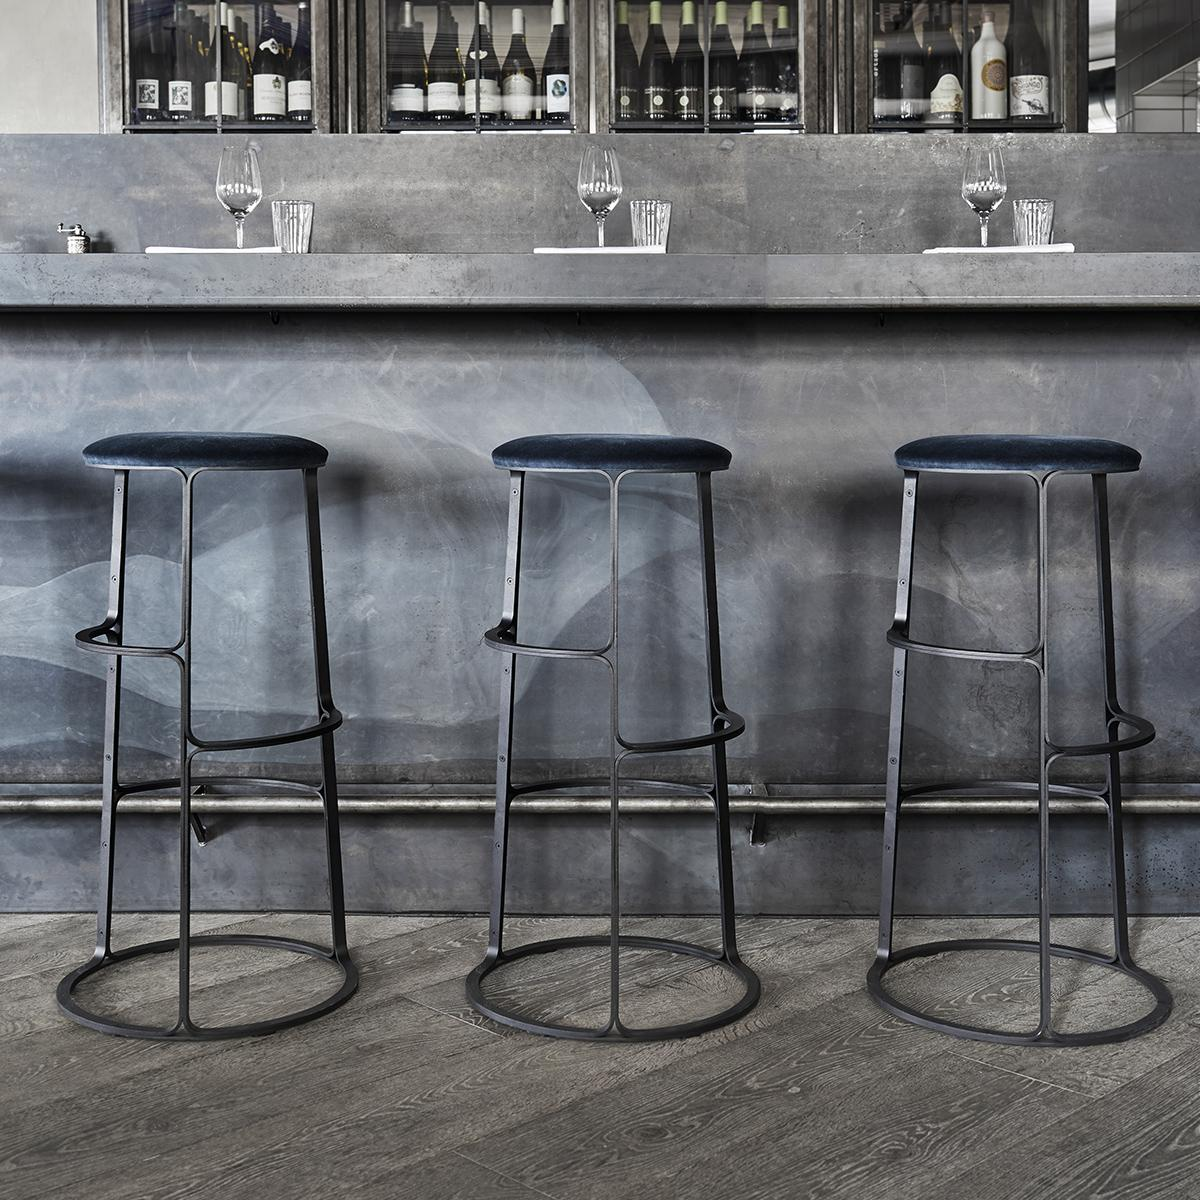 Barbry-Stool-Black-Insitu-2-1200